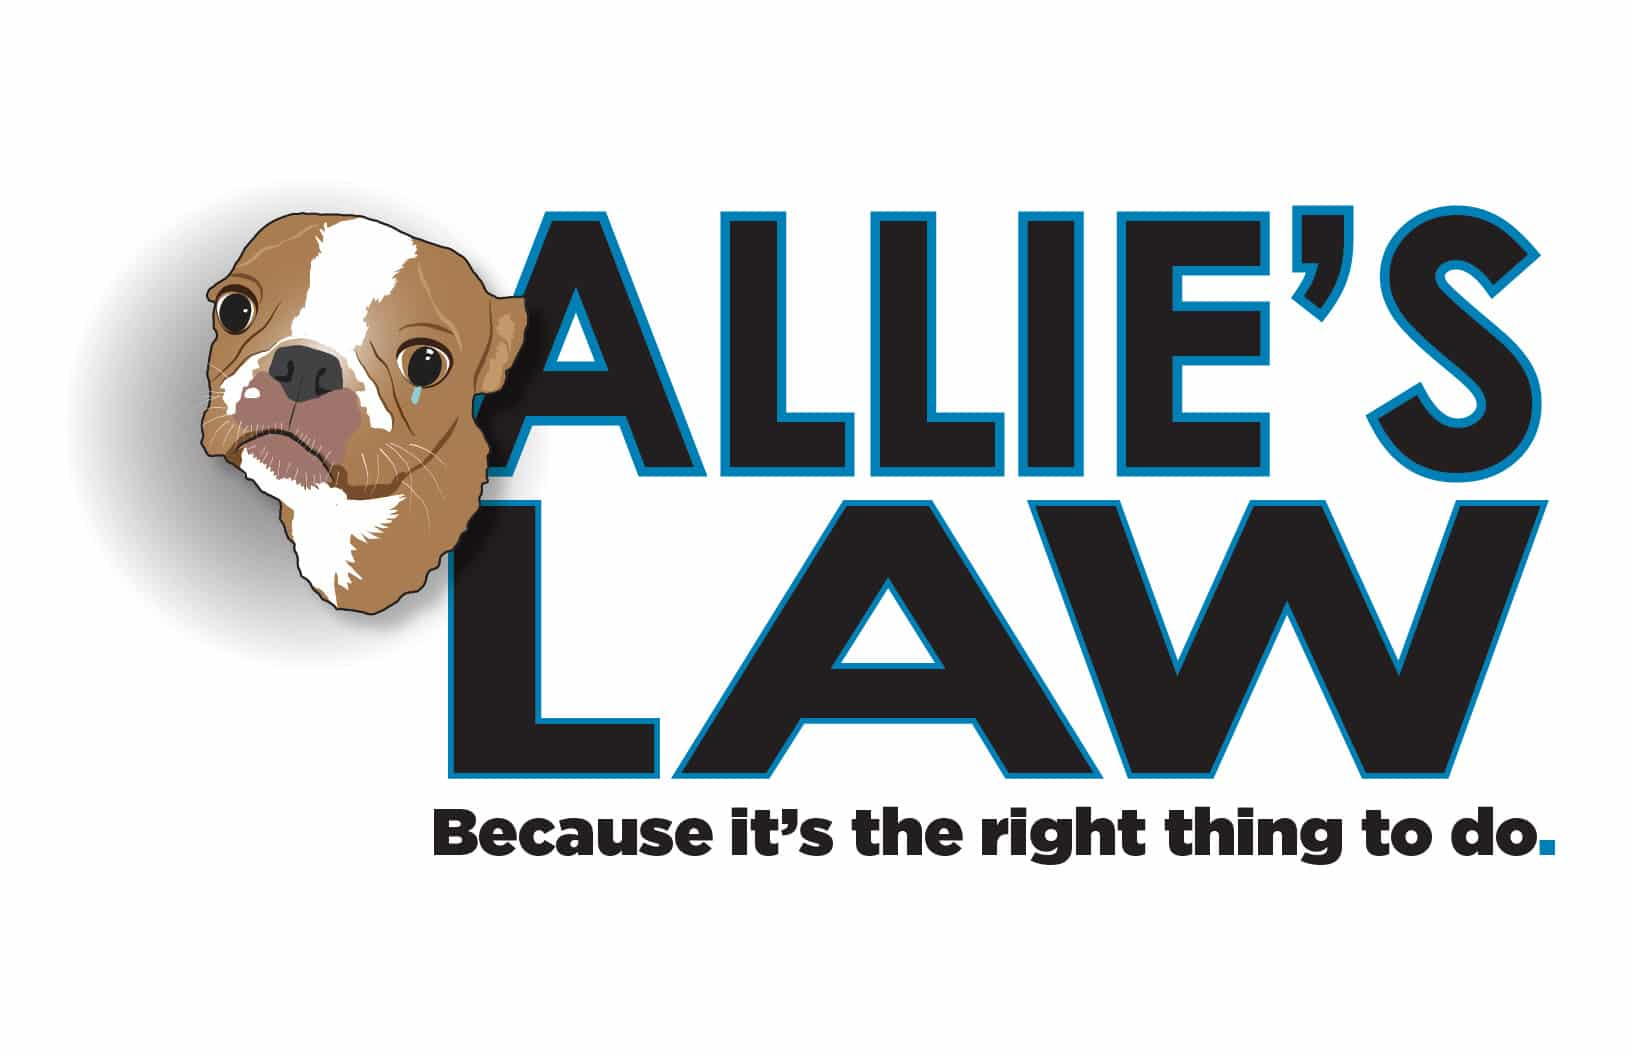 florida abuse pets law